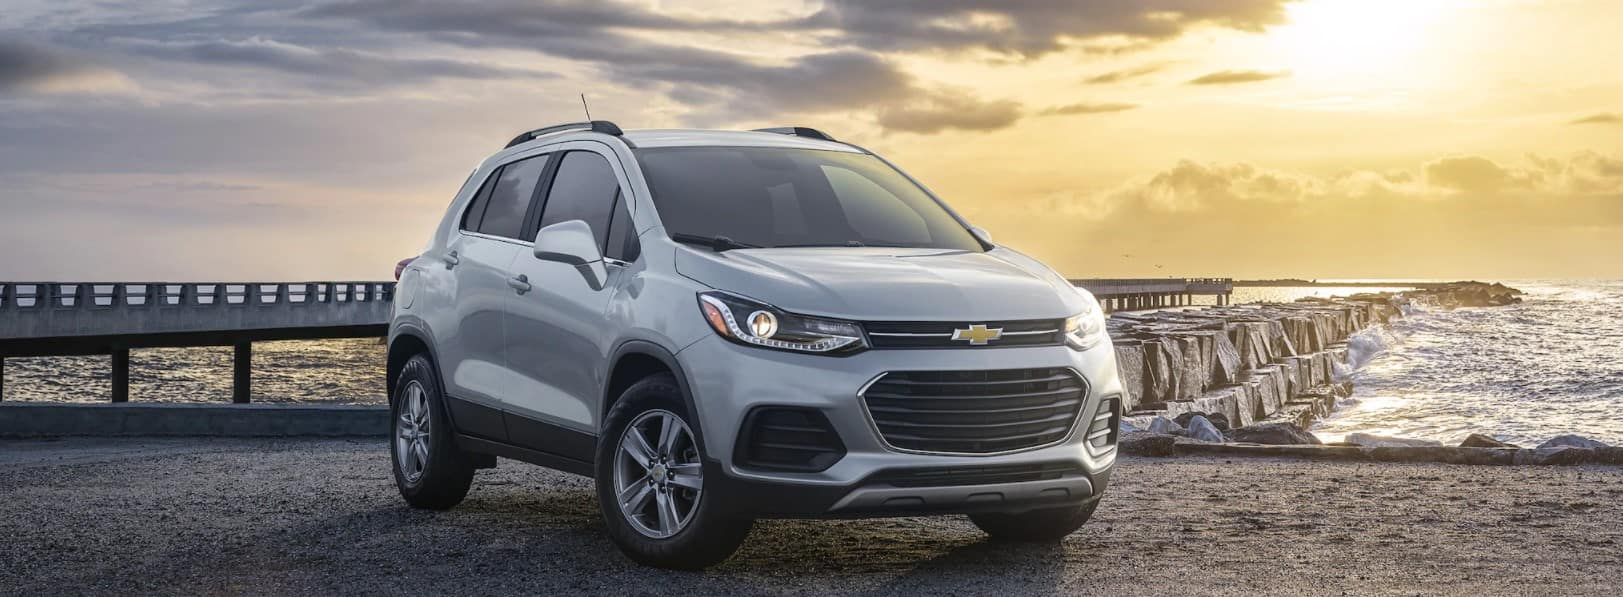 2021 Trax - Silver - Side View